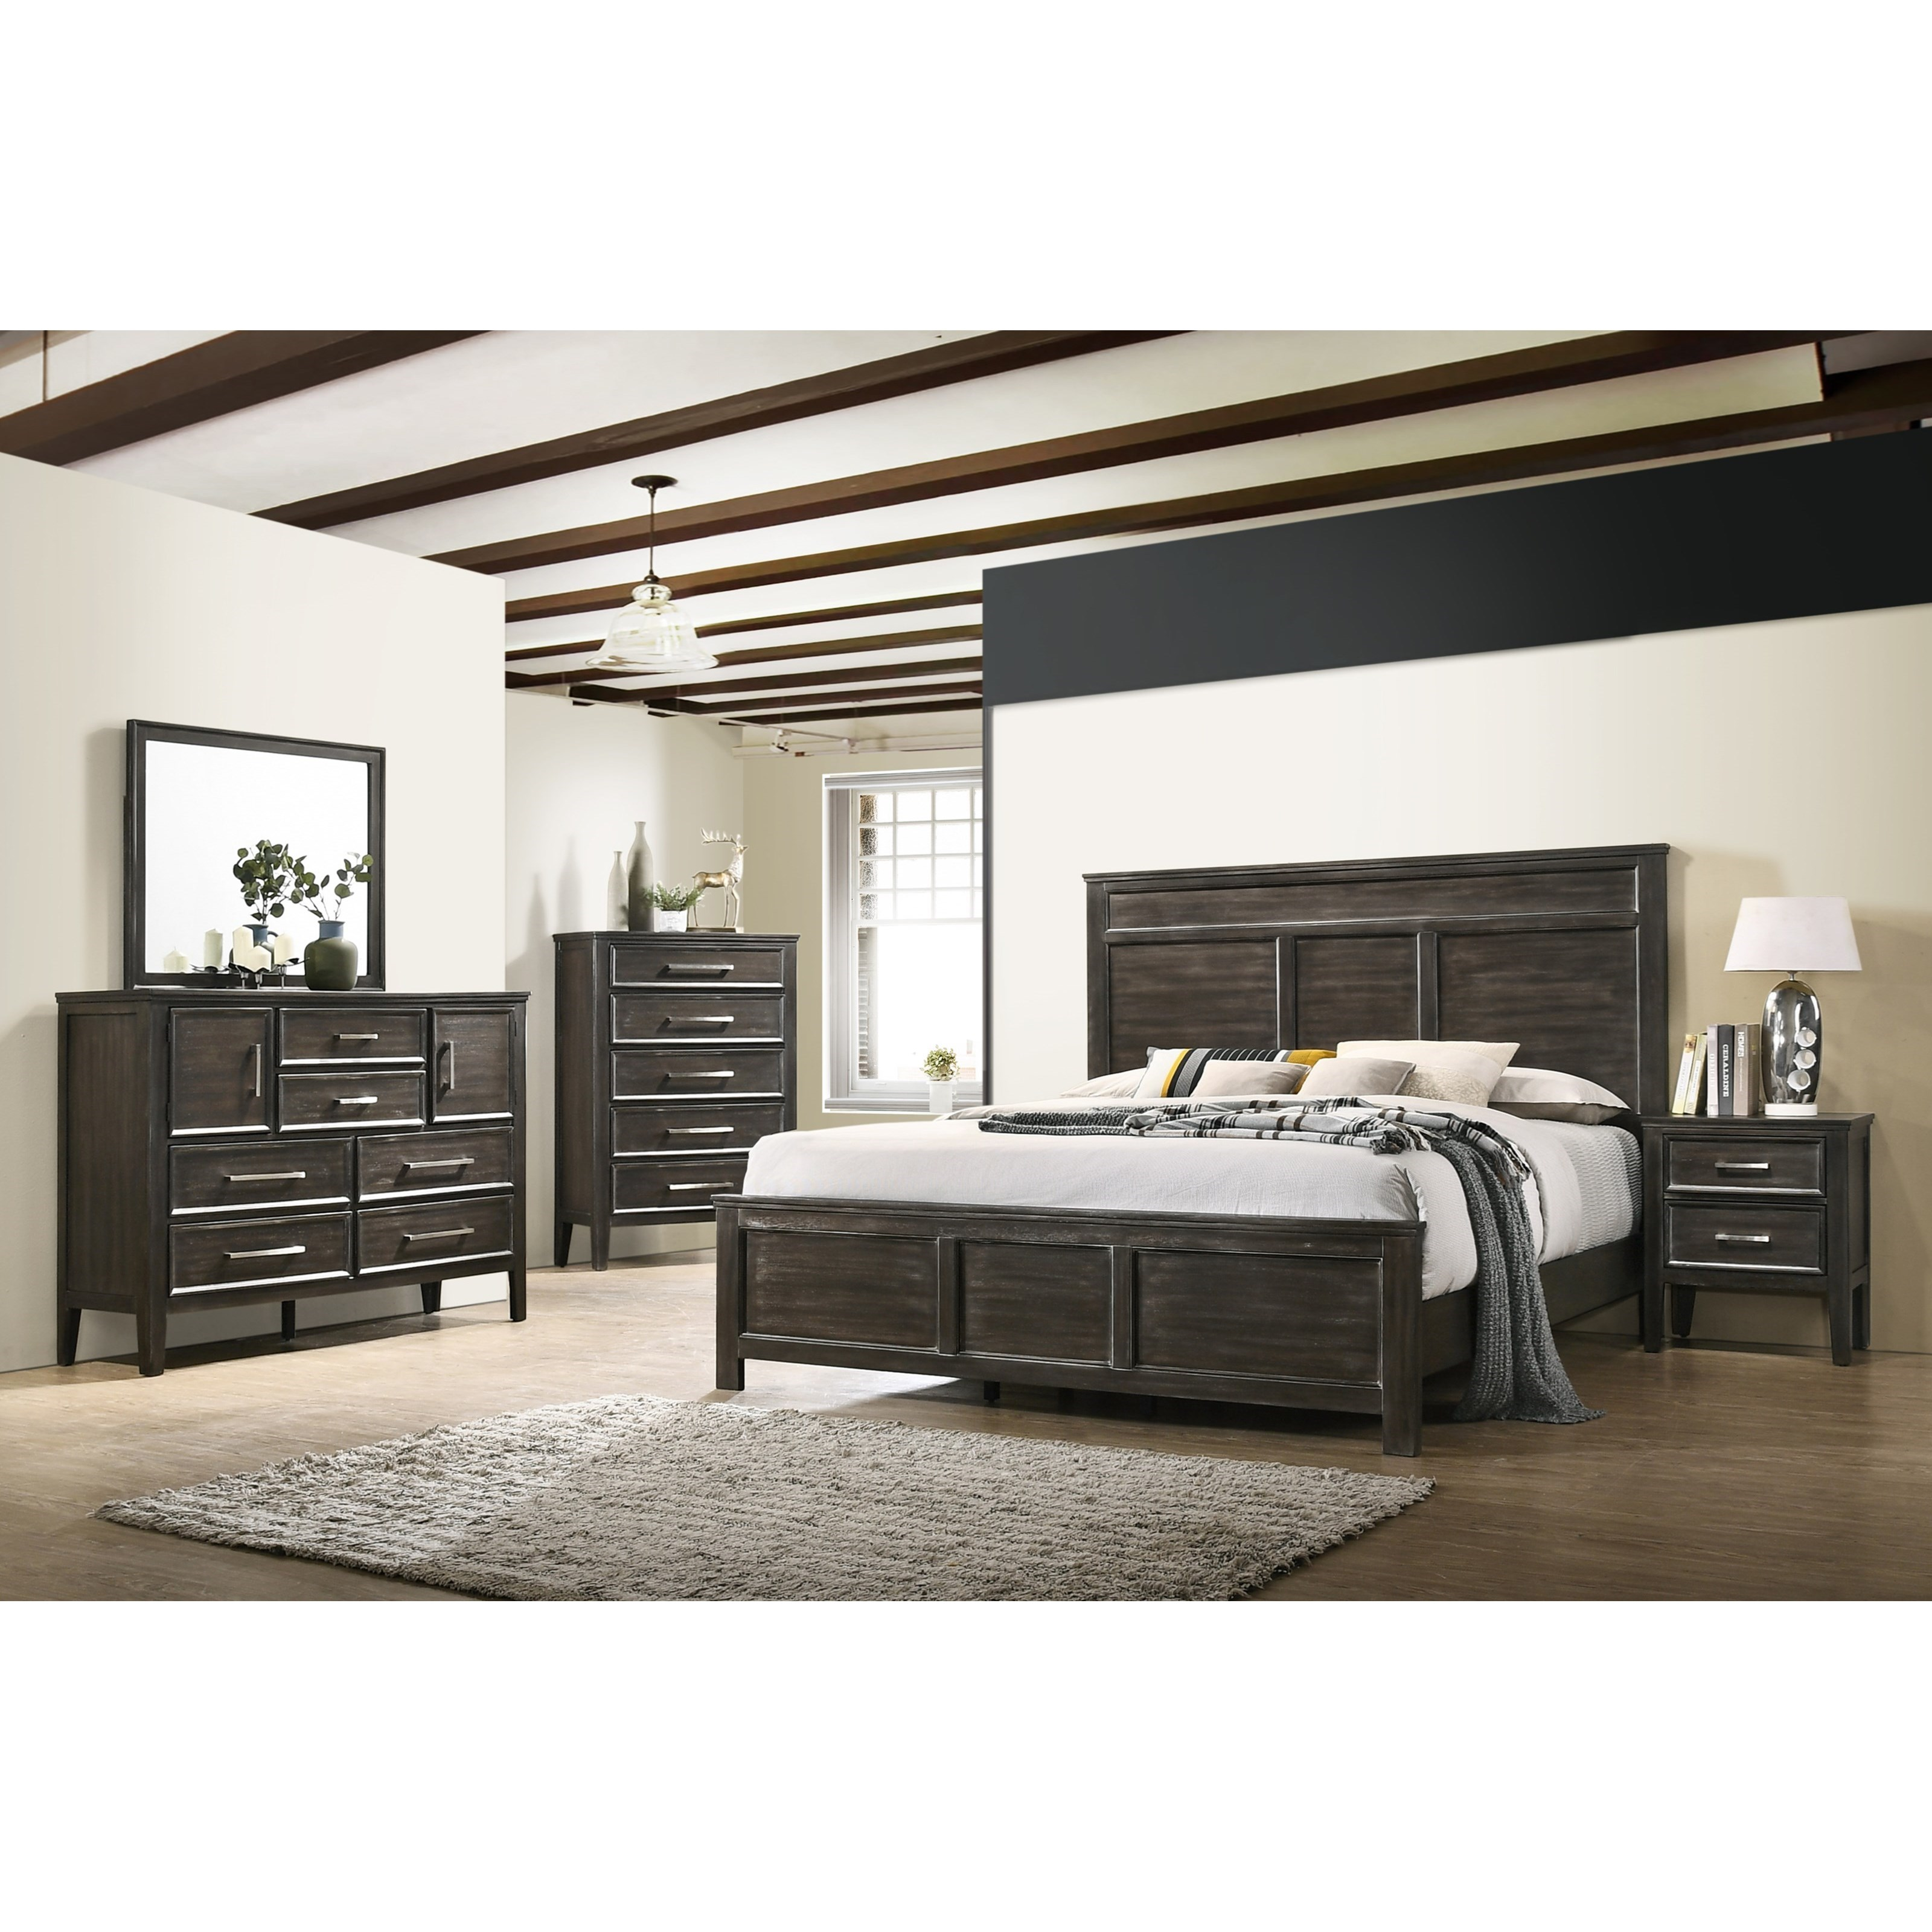 Andover Full Bedroom Group by New Classic at Carolina Direct